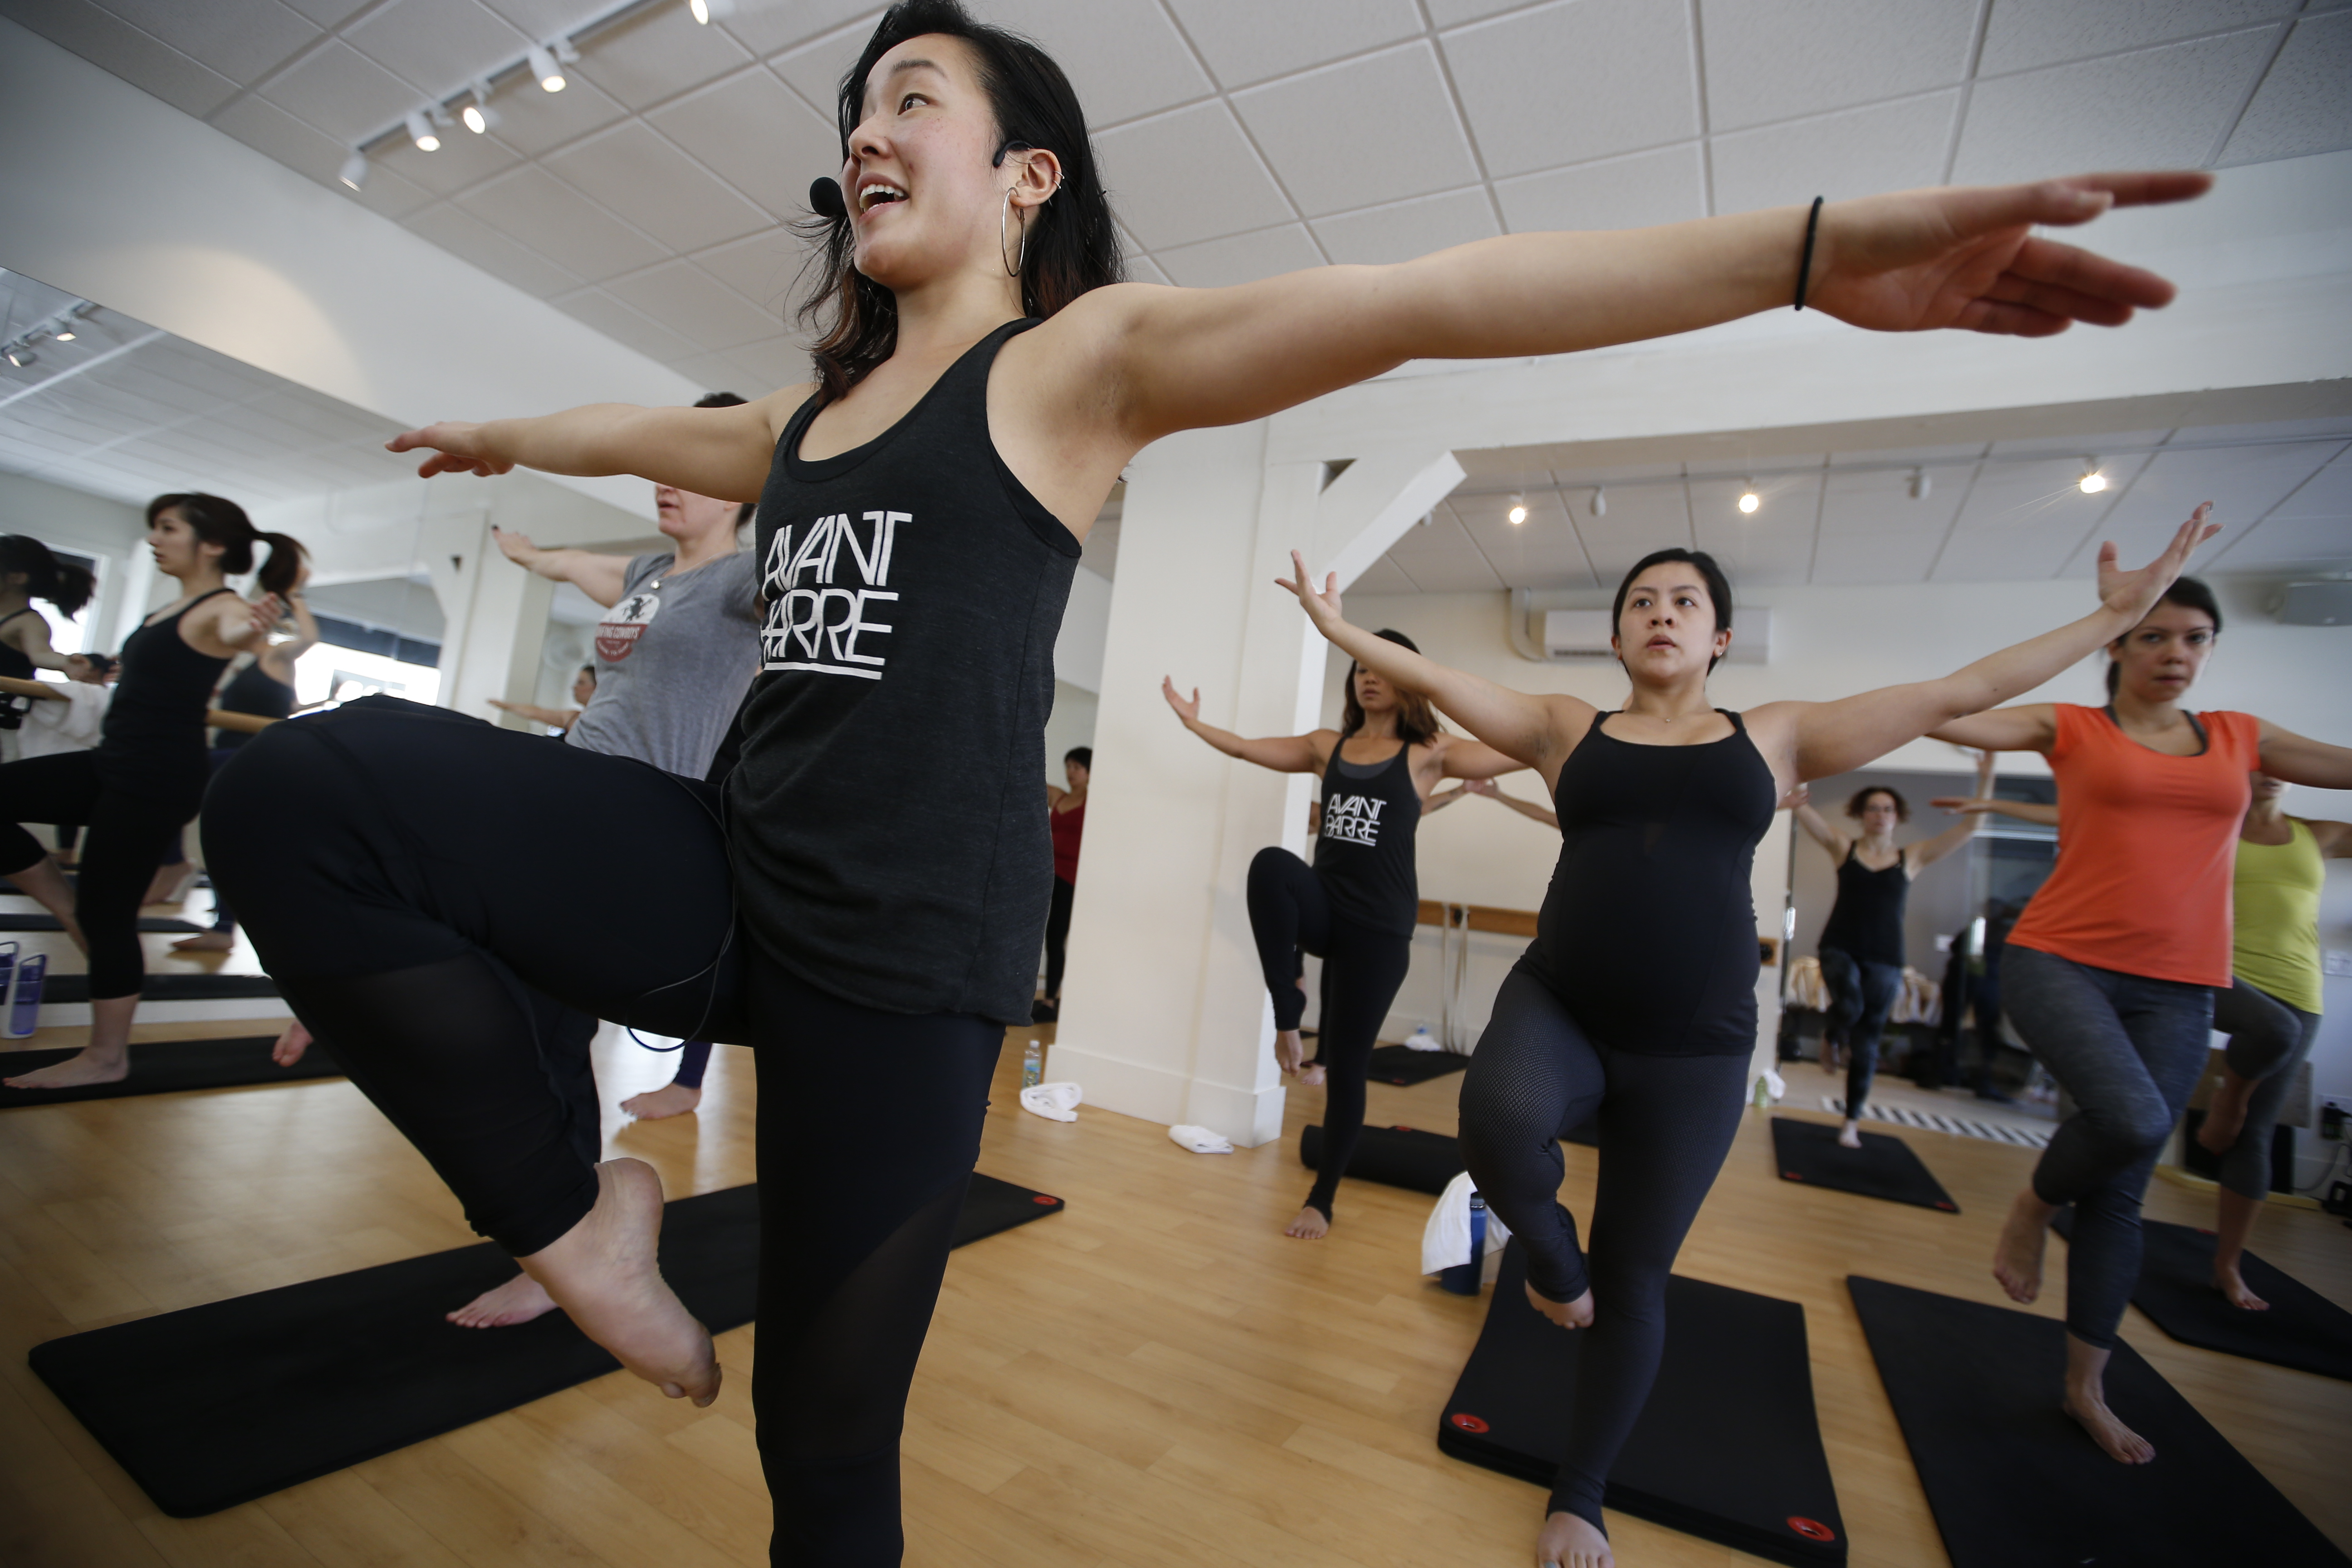 Exercise proves effective when it comes to beating the winter blues